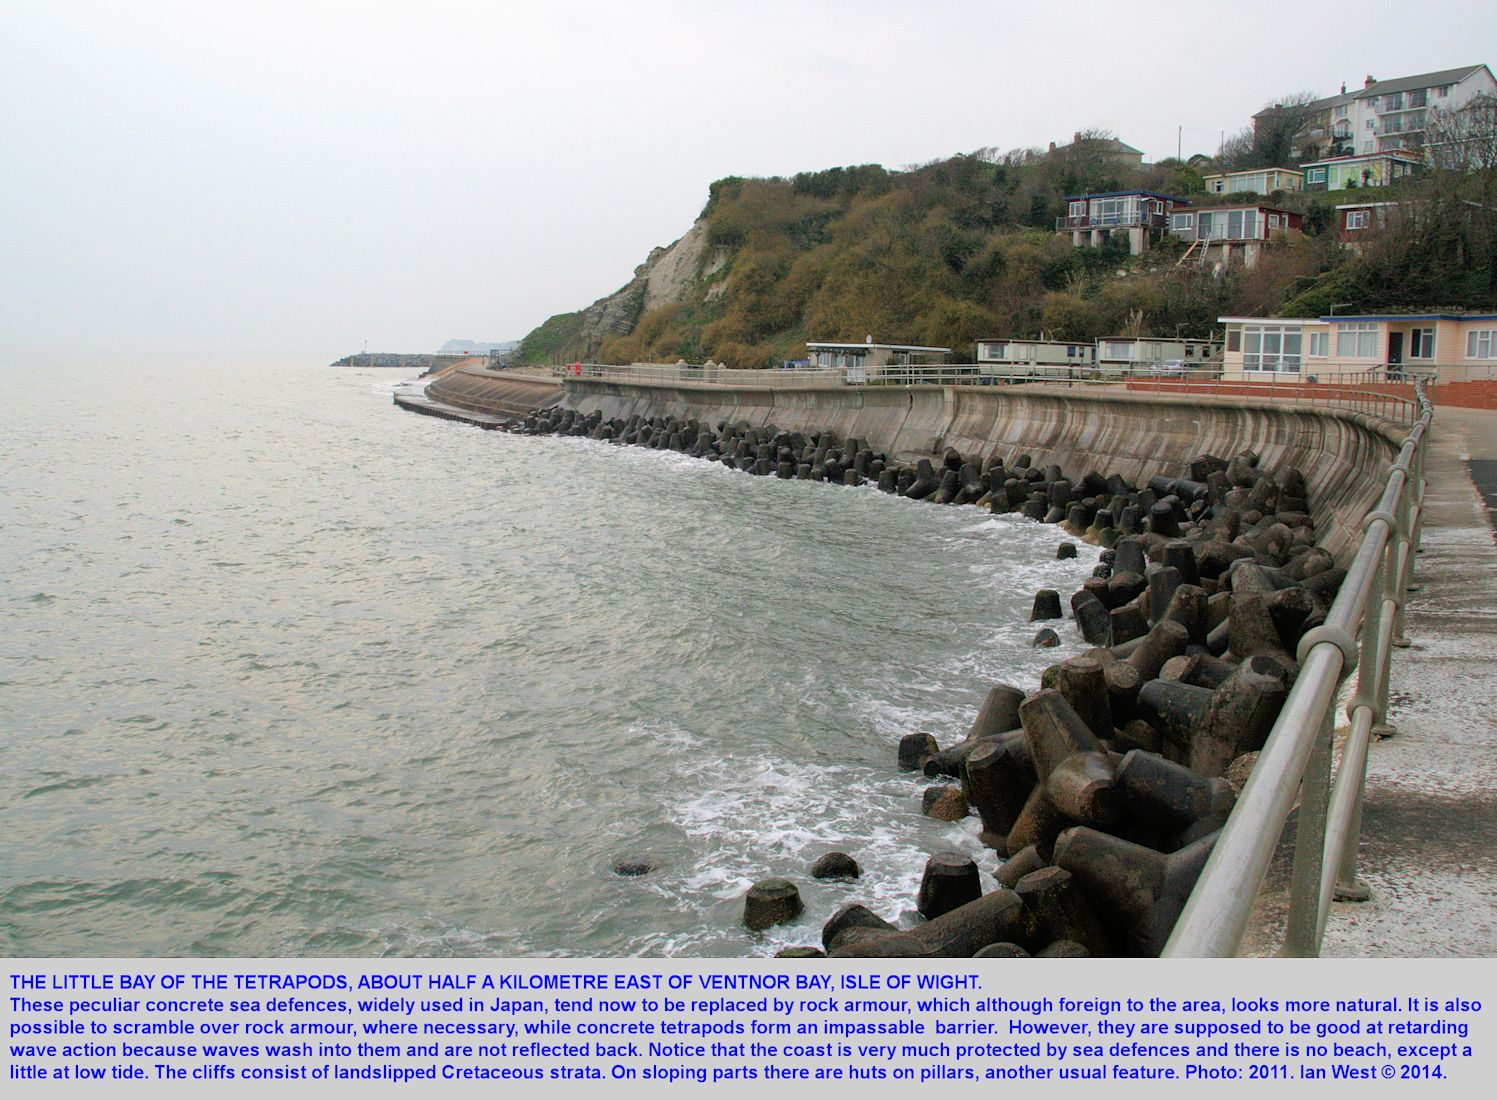 A small bay with tetrapod rock armour, about half a kilometre east of Ventnor, Isle of Wight